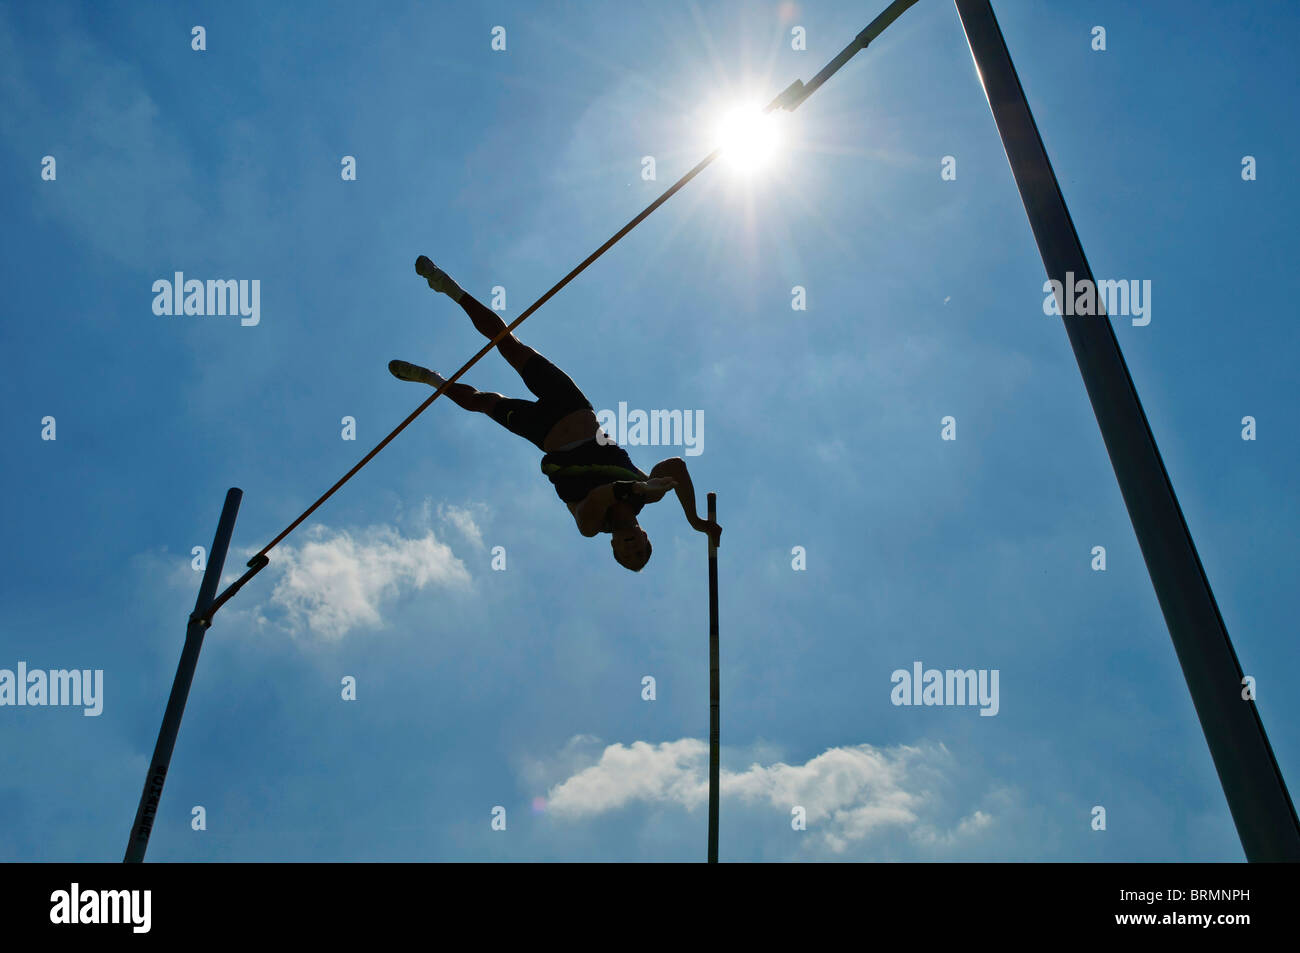 Pole Vaulter makes the jump against blue sky - Stock Image